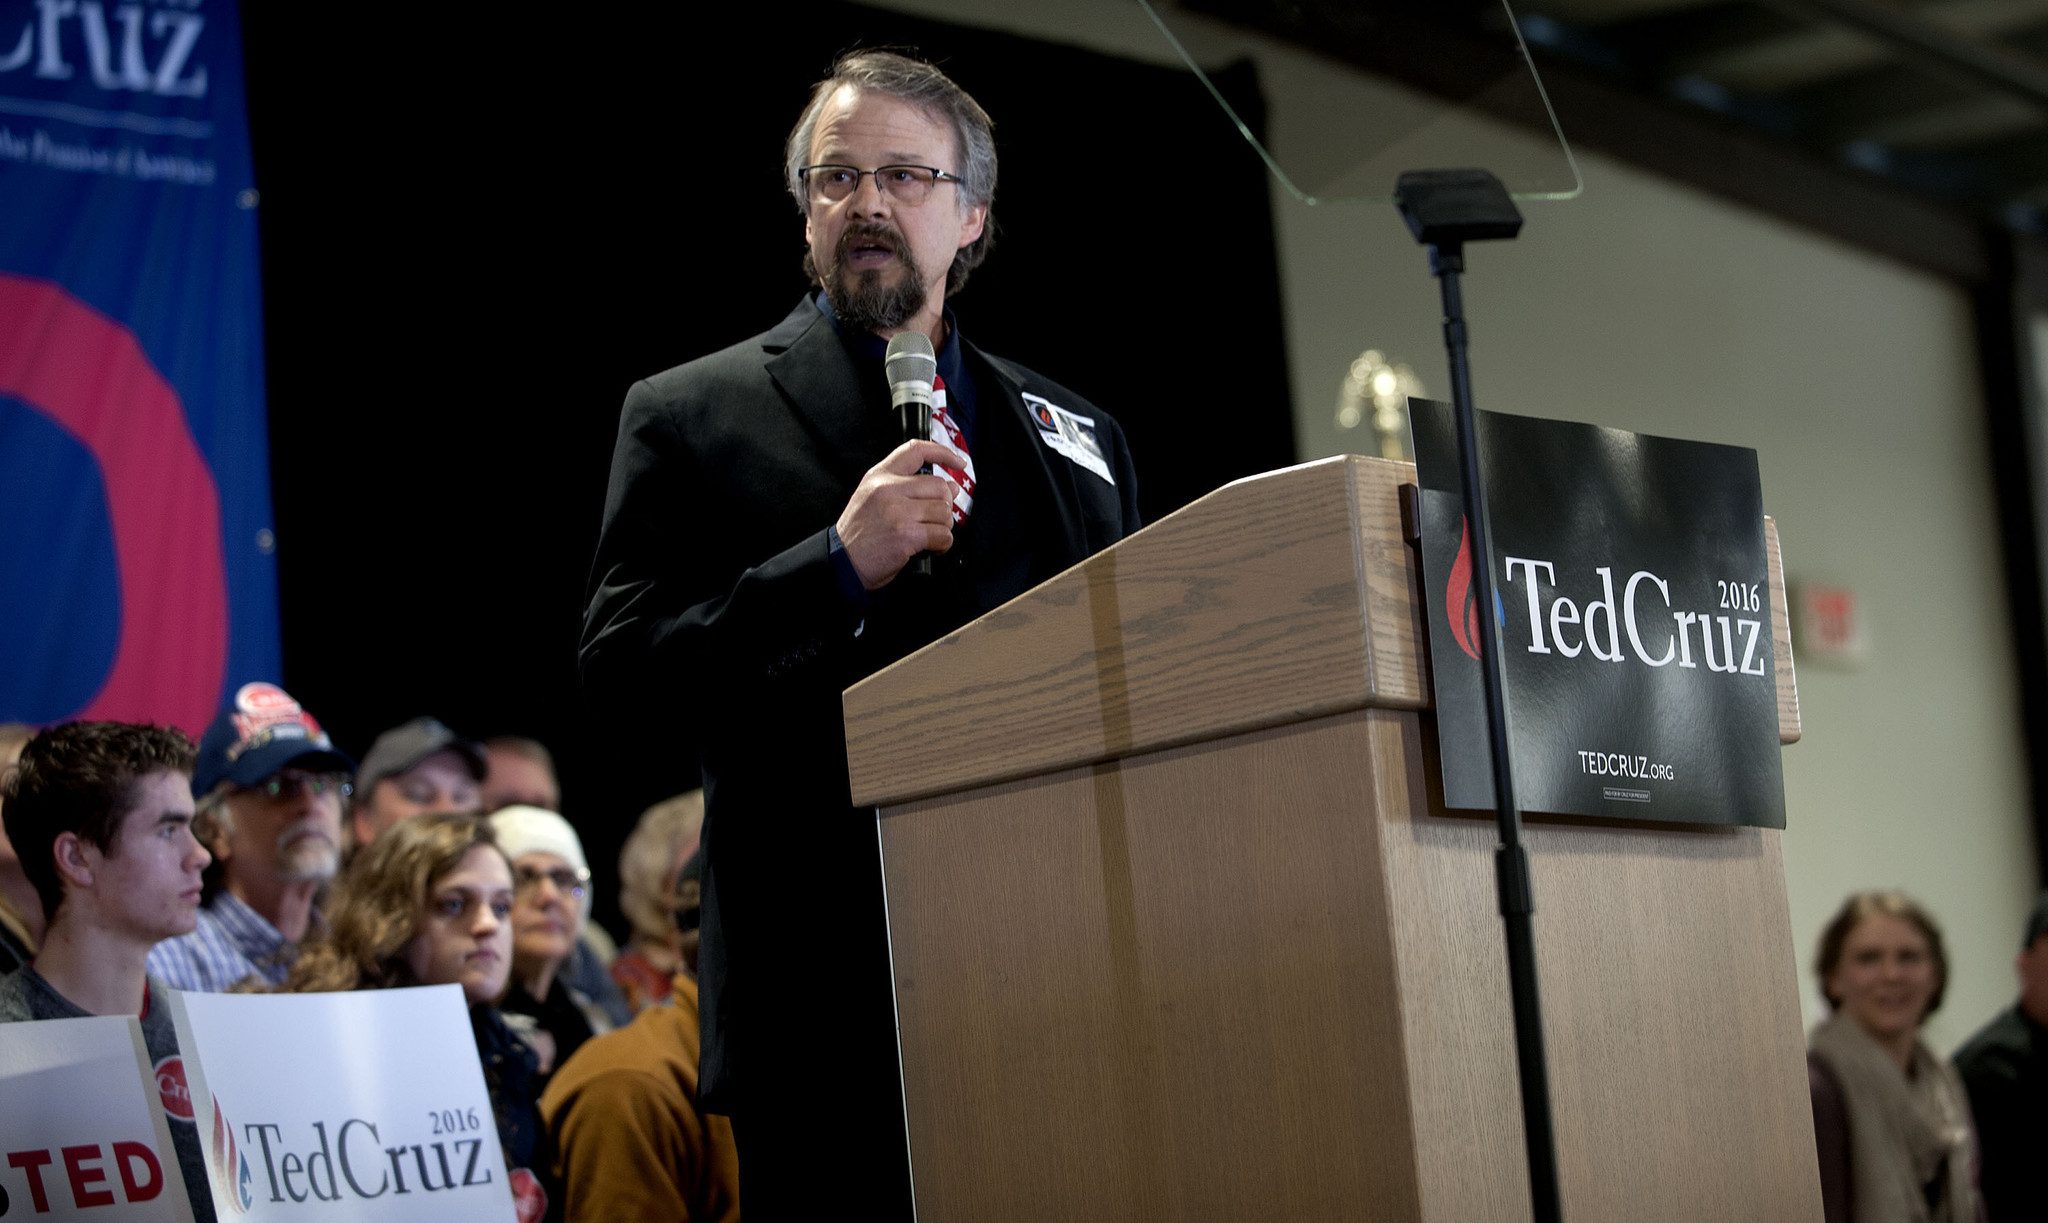 Coeur D Alene Honda >> Pastor who spoke at Ted Cruz rally shot in the head - LA Times